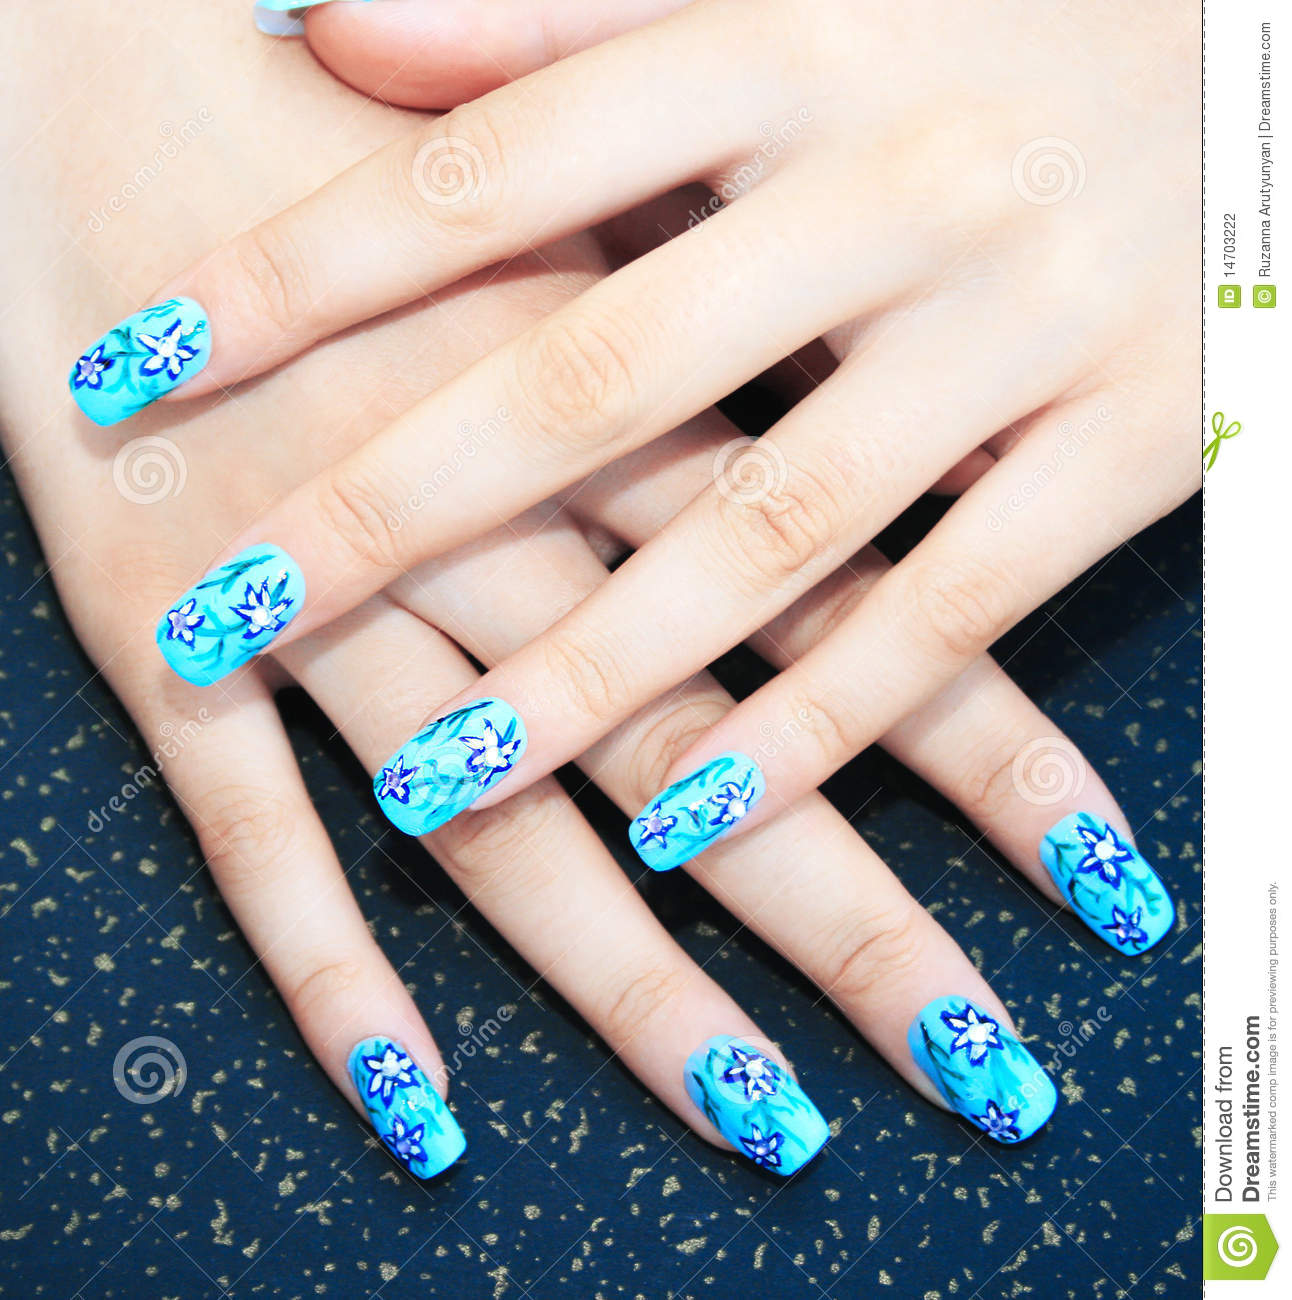 Hands with nail art stock photo image of artistically 14703222 hands with nail art prinsesfo Image collections